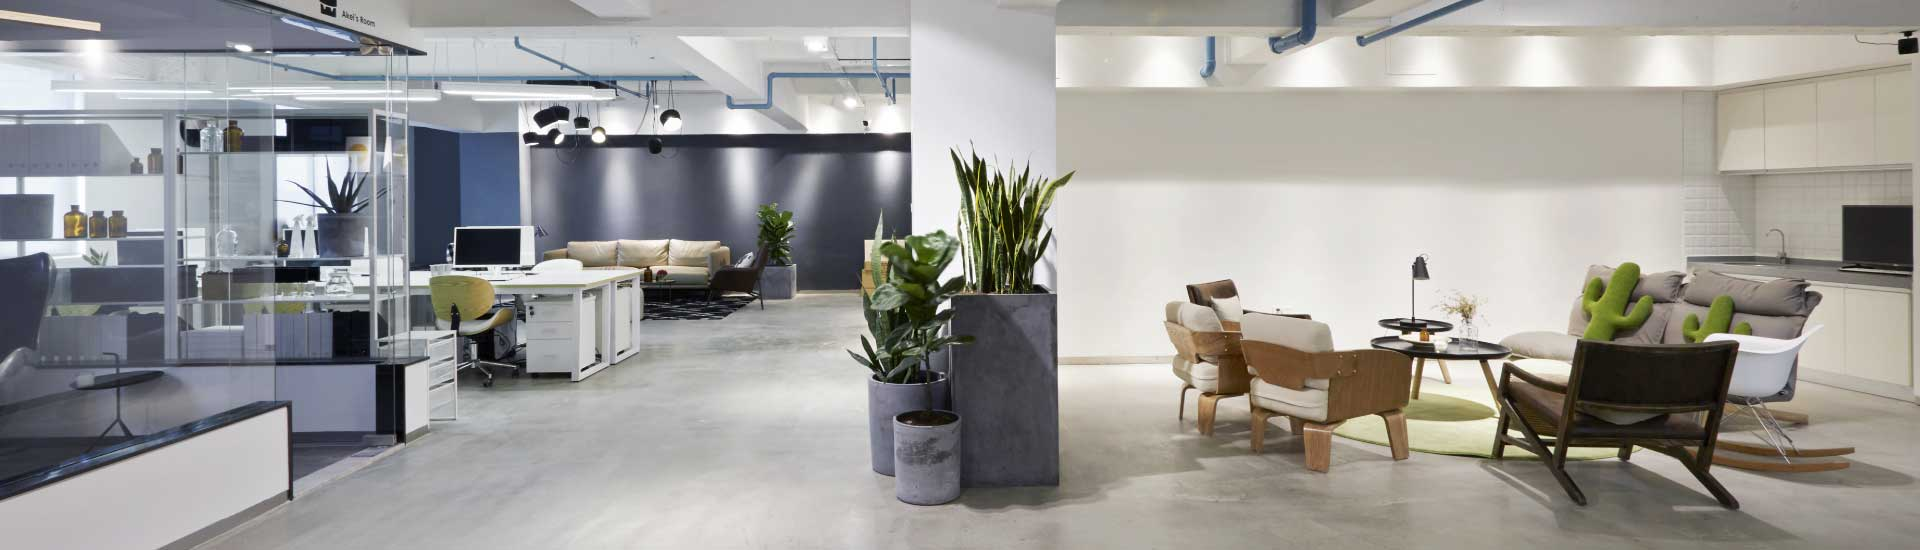 Optimally lit office and common areas after a successful commercial lighting upgrade